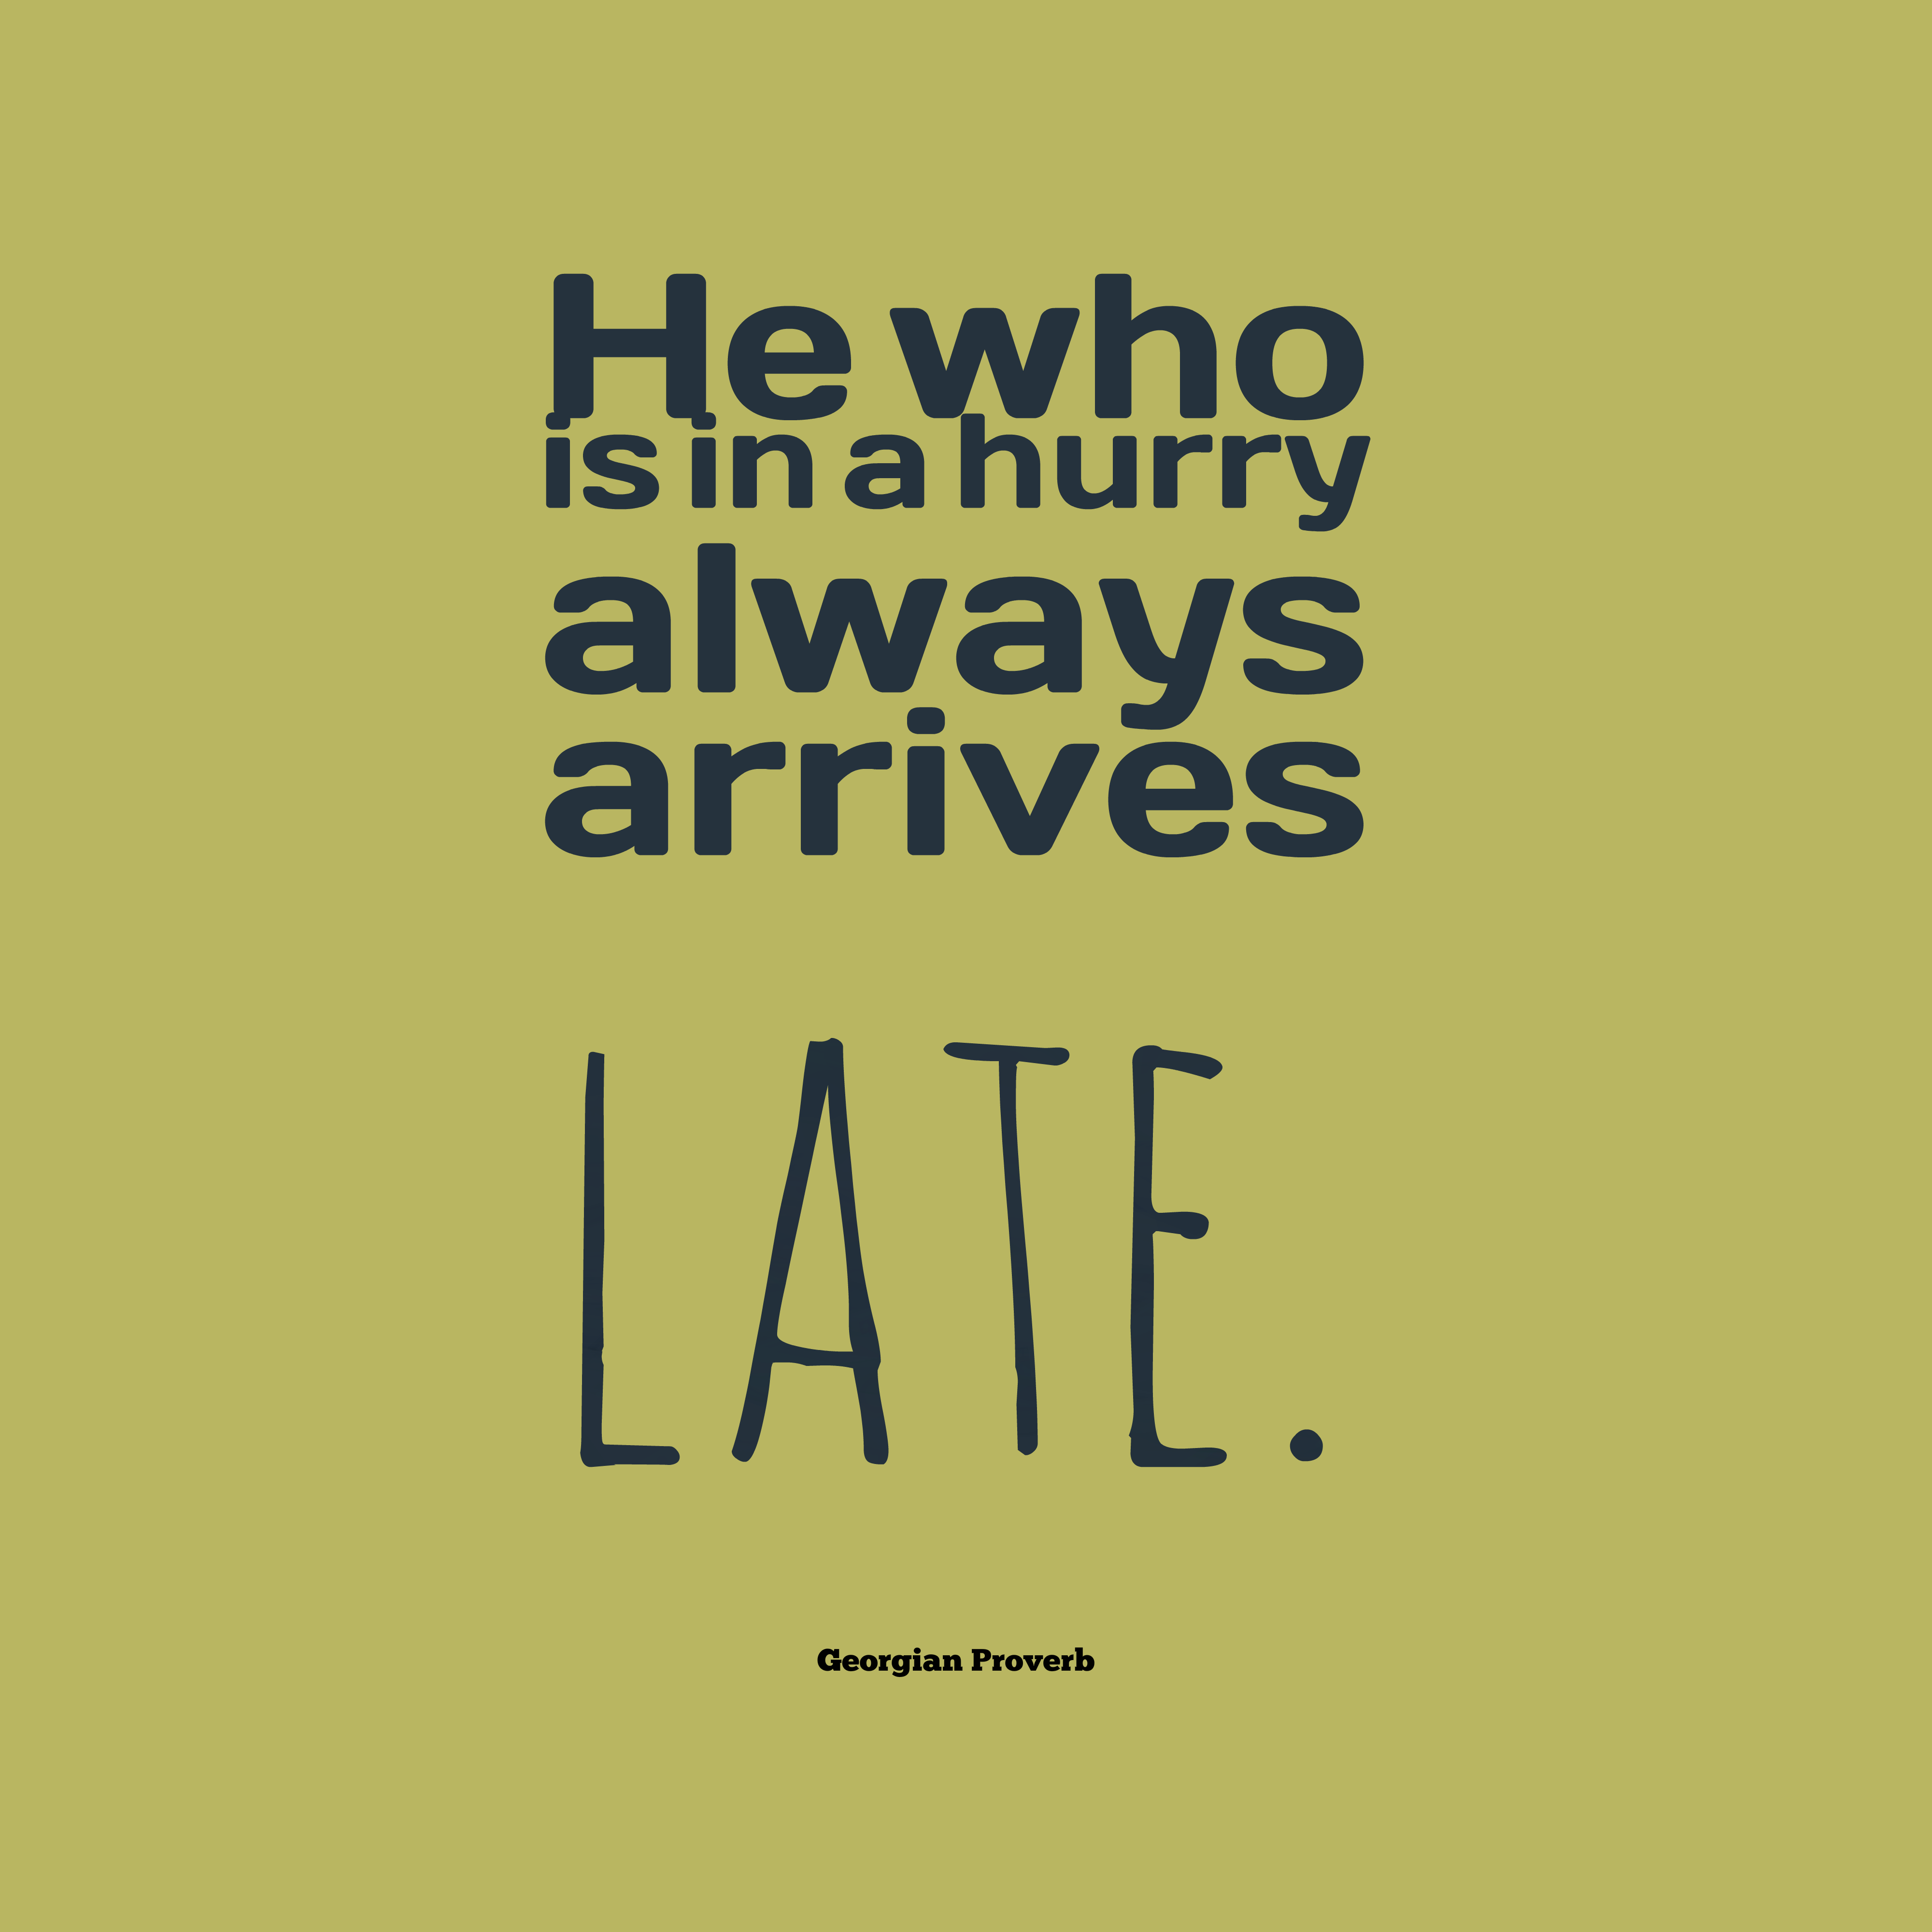 Quotes image of He who is in a hurry always arrives late.